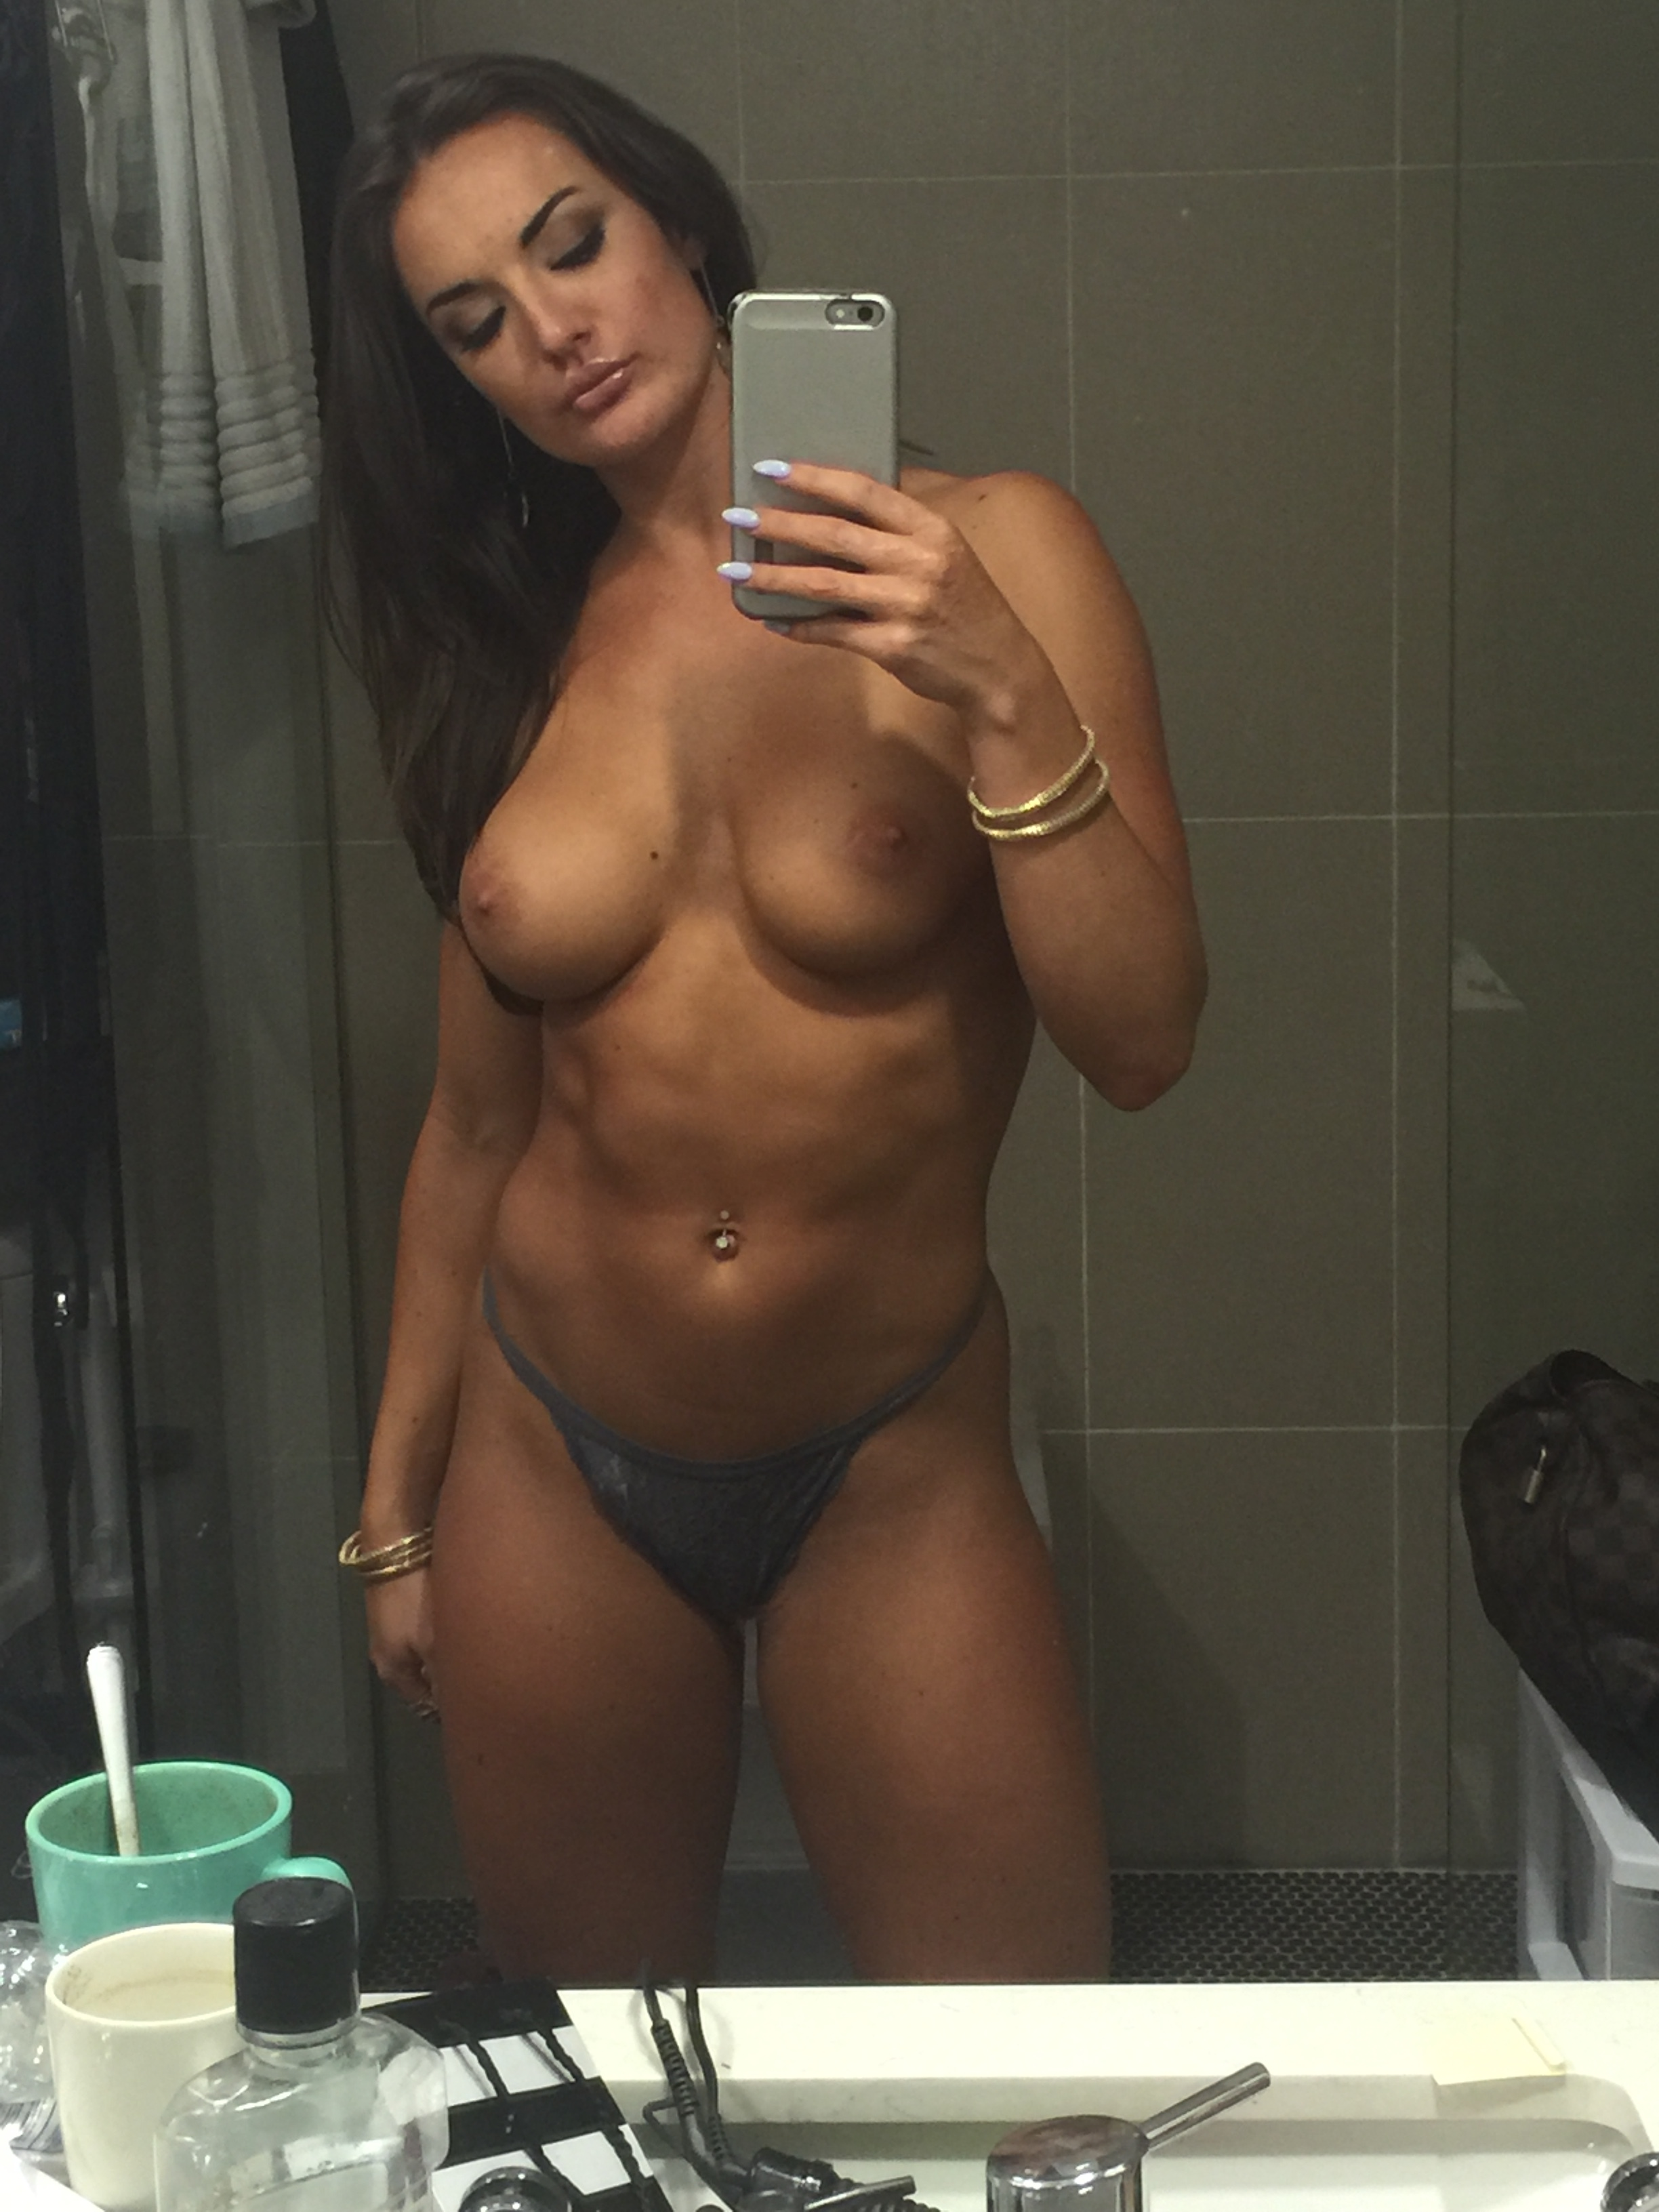 Best nude instagrams